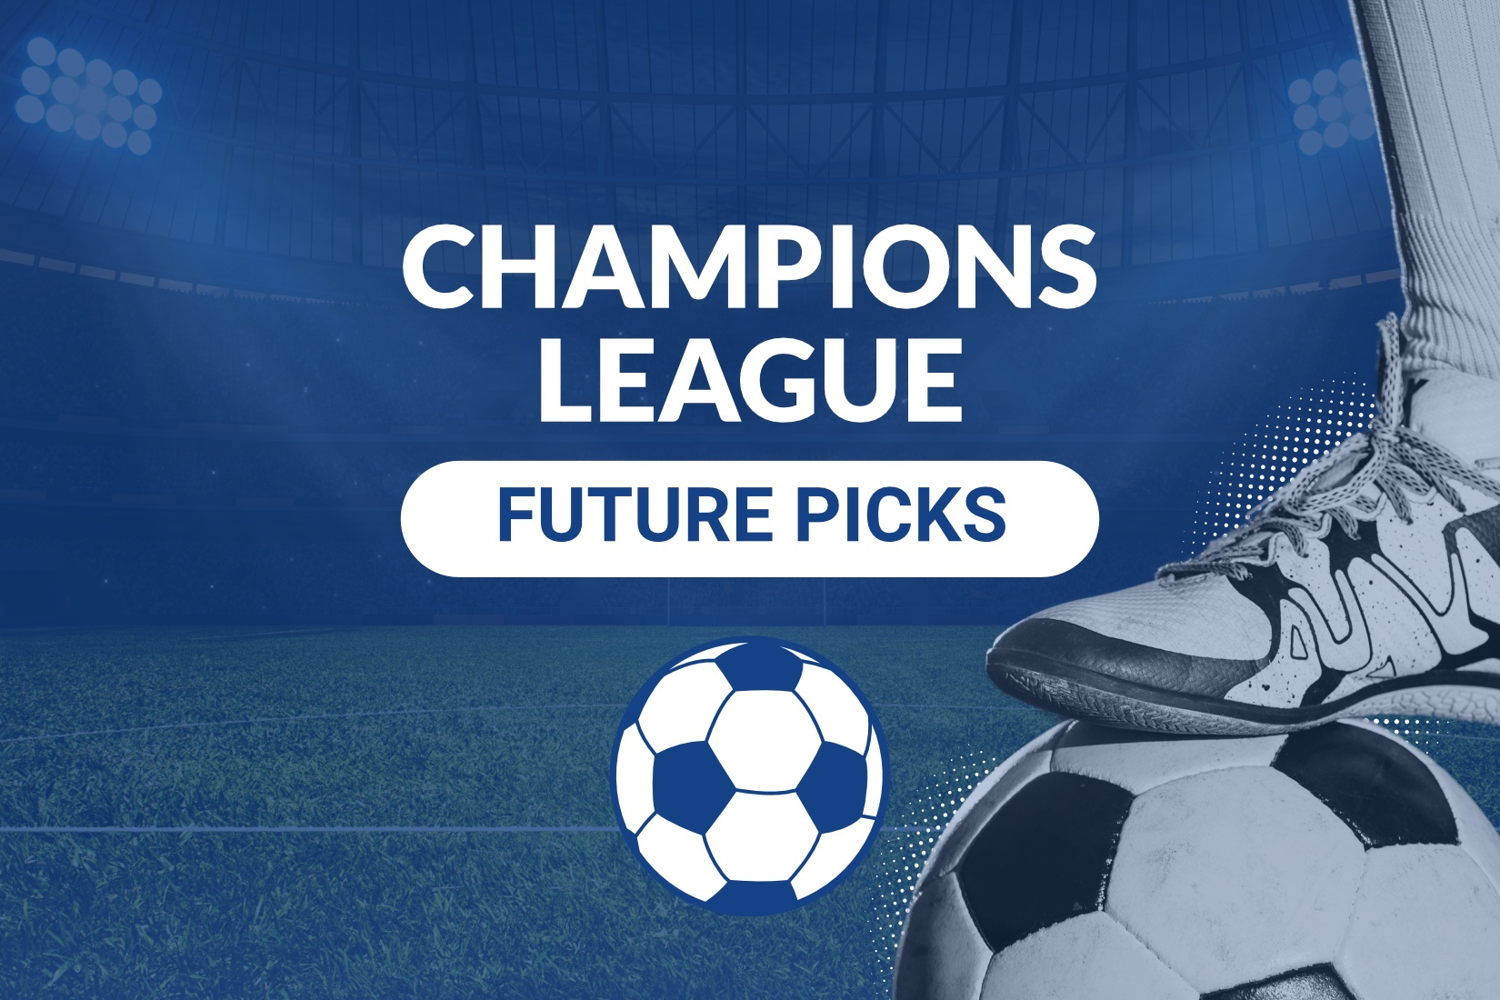 Champions League Futures Picks: Bayern Will Be Tough To Topple